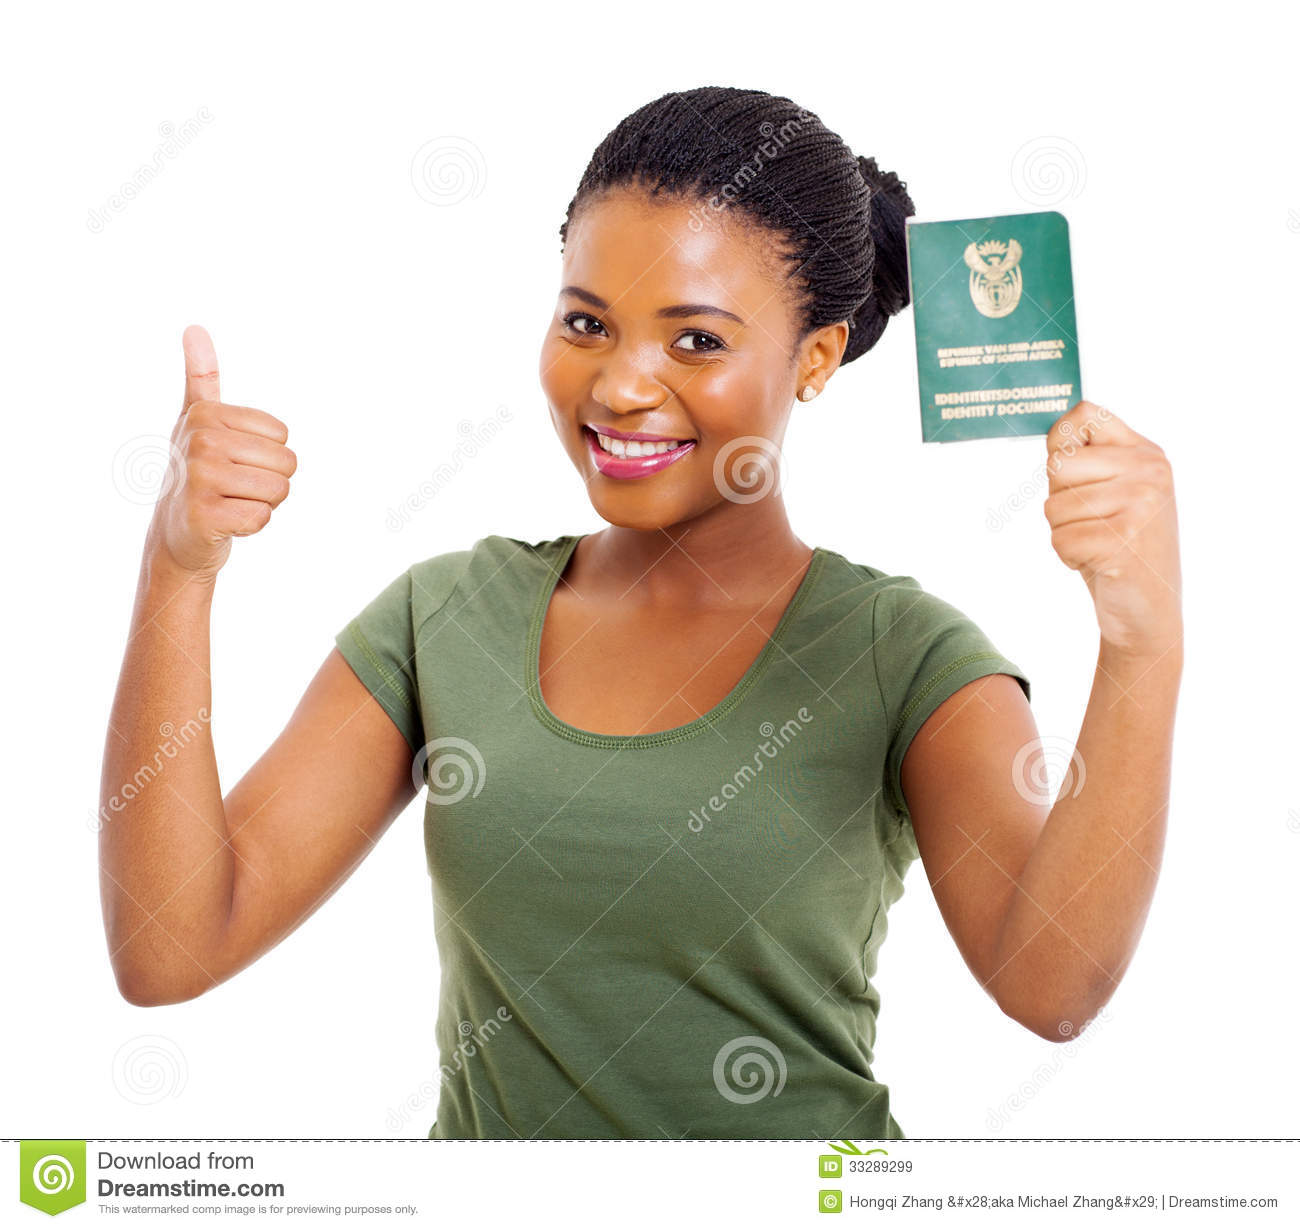 Download South african ID stock image. Image of confident, beauty - 33289299